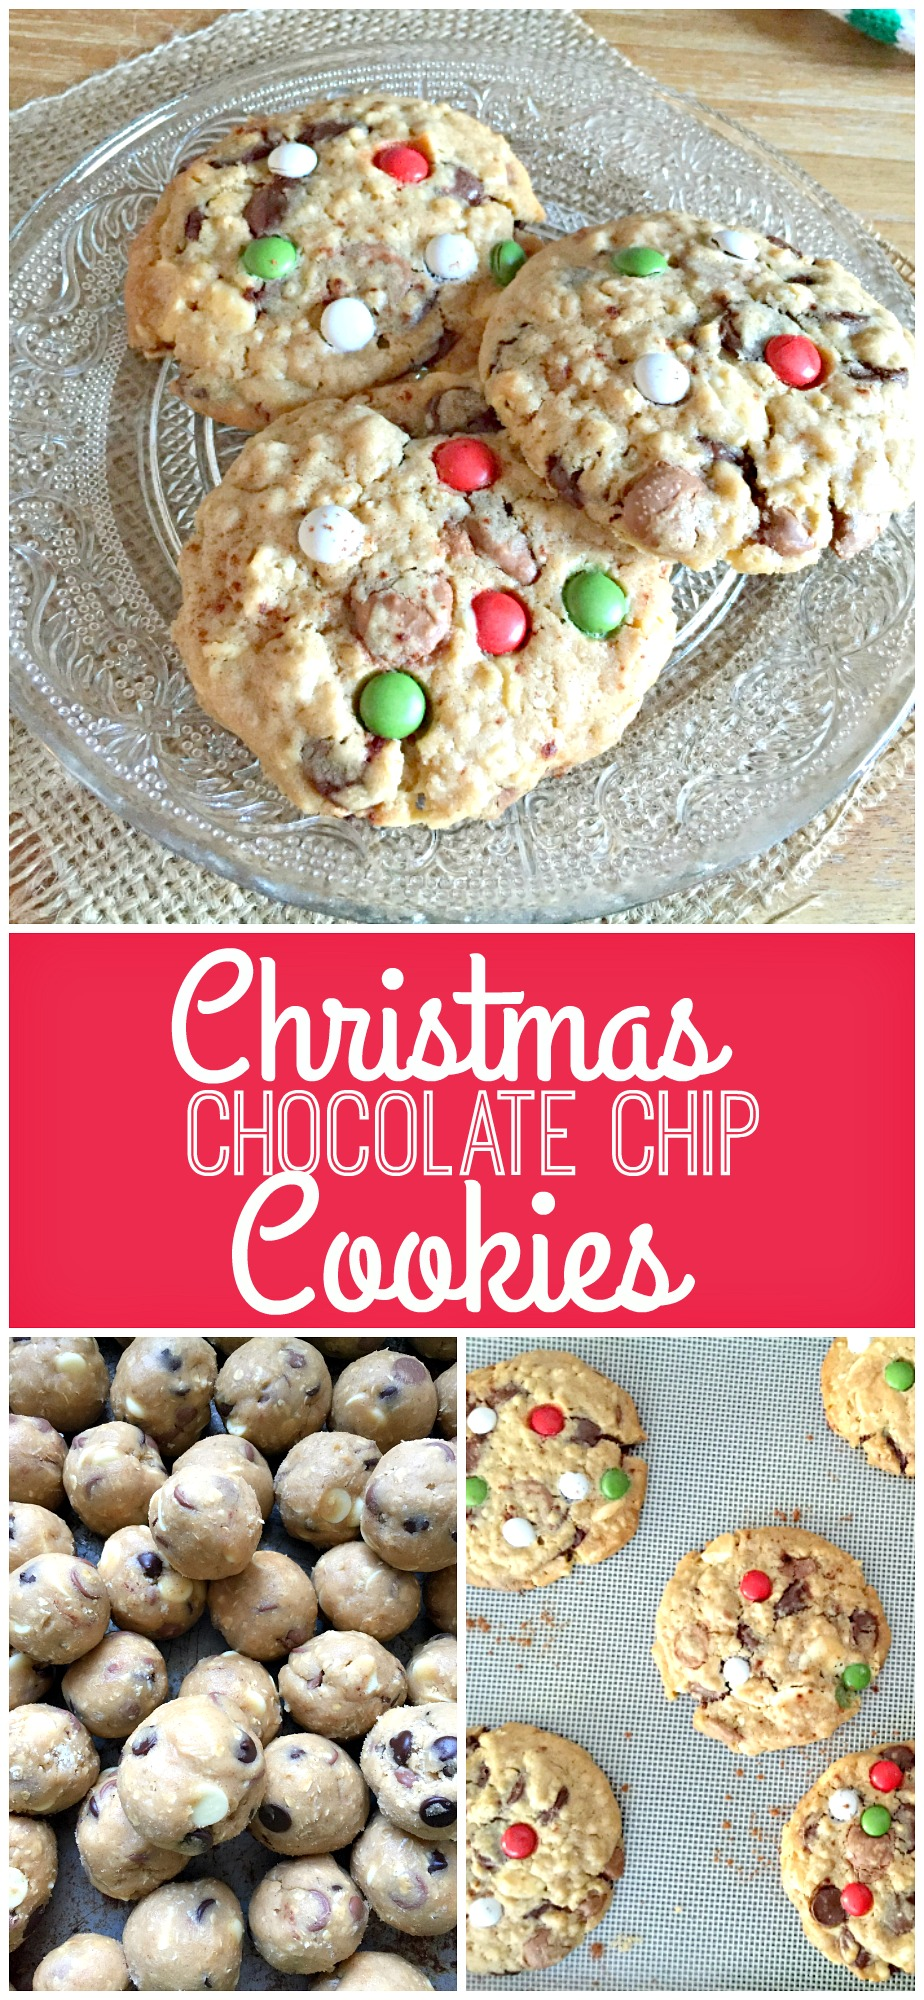 Delicious Christmas Chocolate Chip Cookies with yummy cinnamon and oaty texture! Perfect for Santa... or just for you!